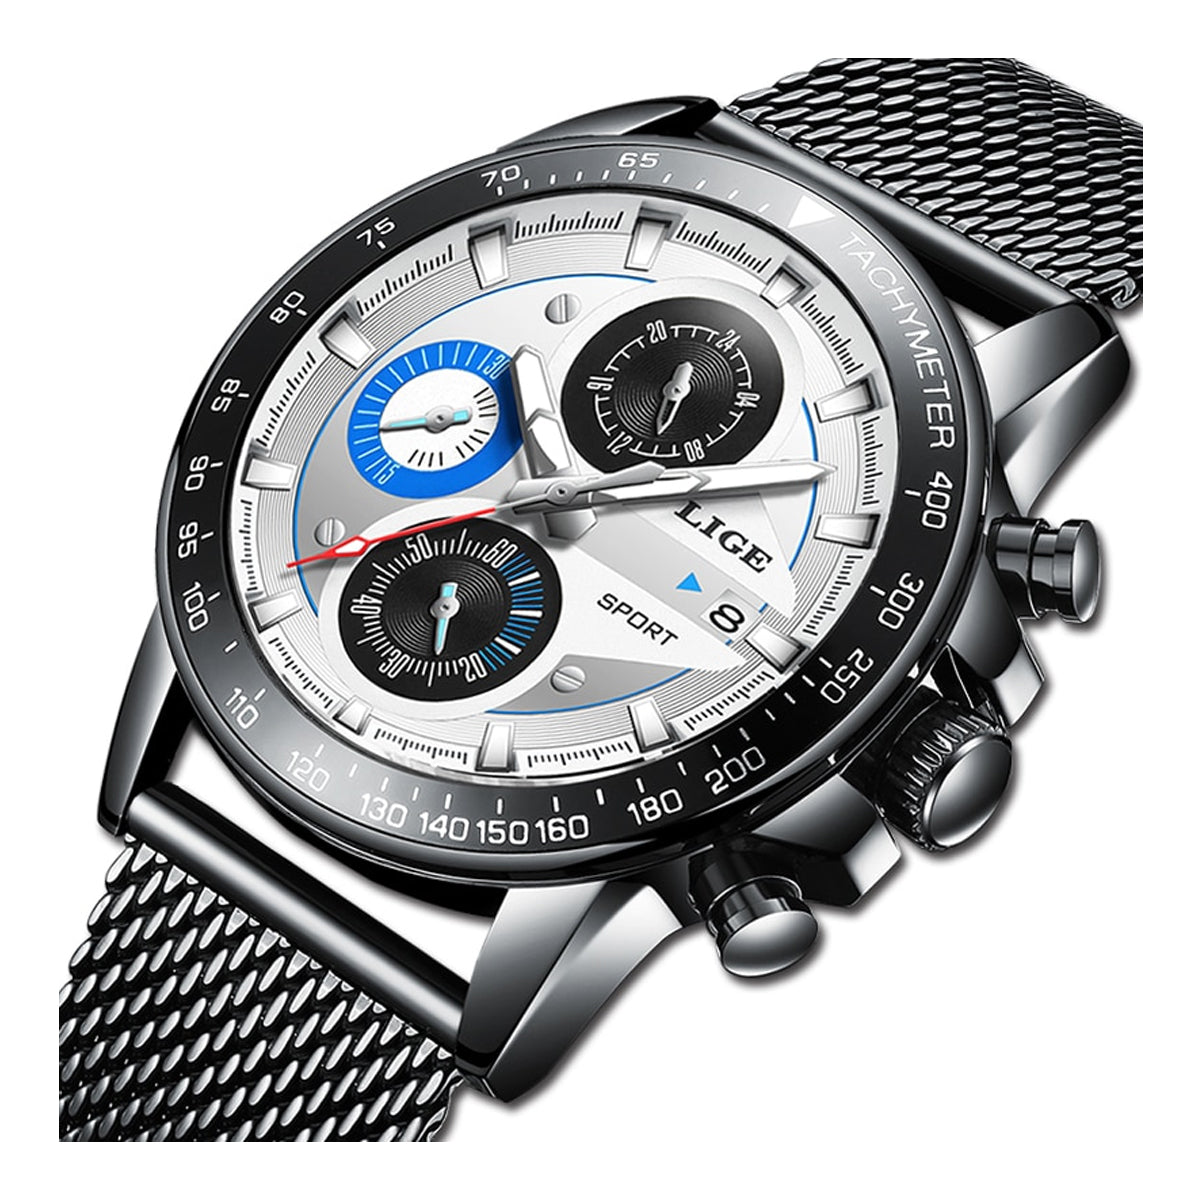 Elegant Waterproof Sports Watch for Men with Hardlex Dial Window